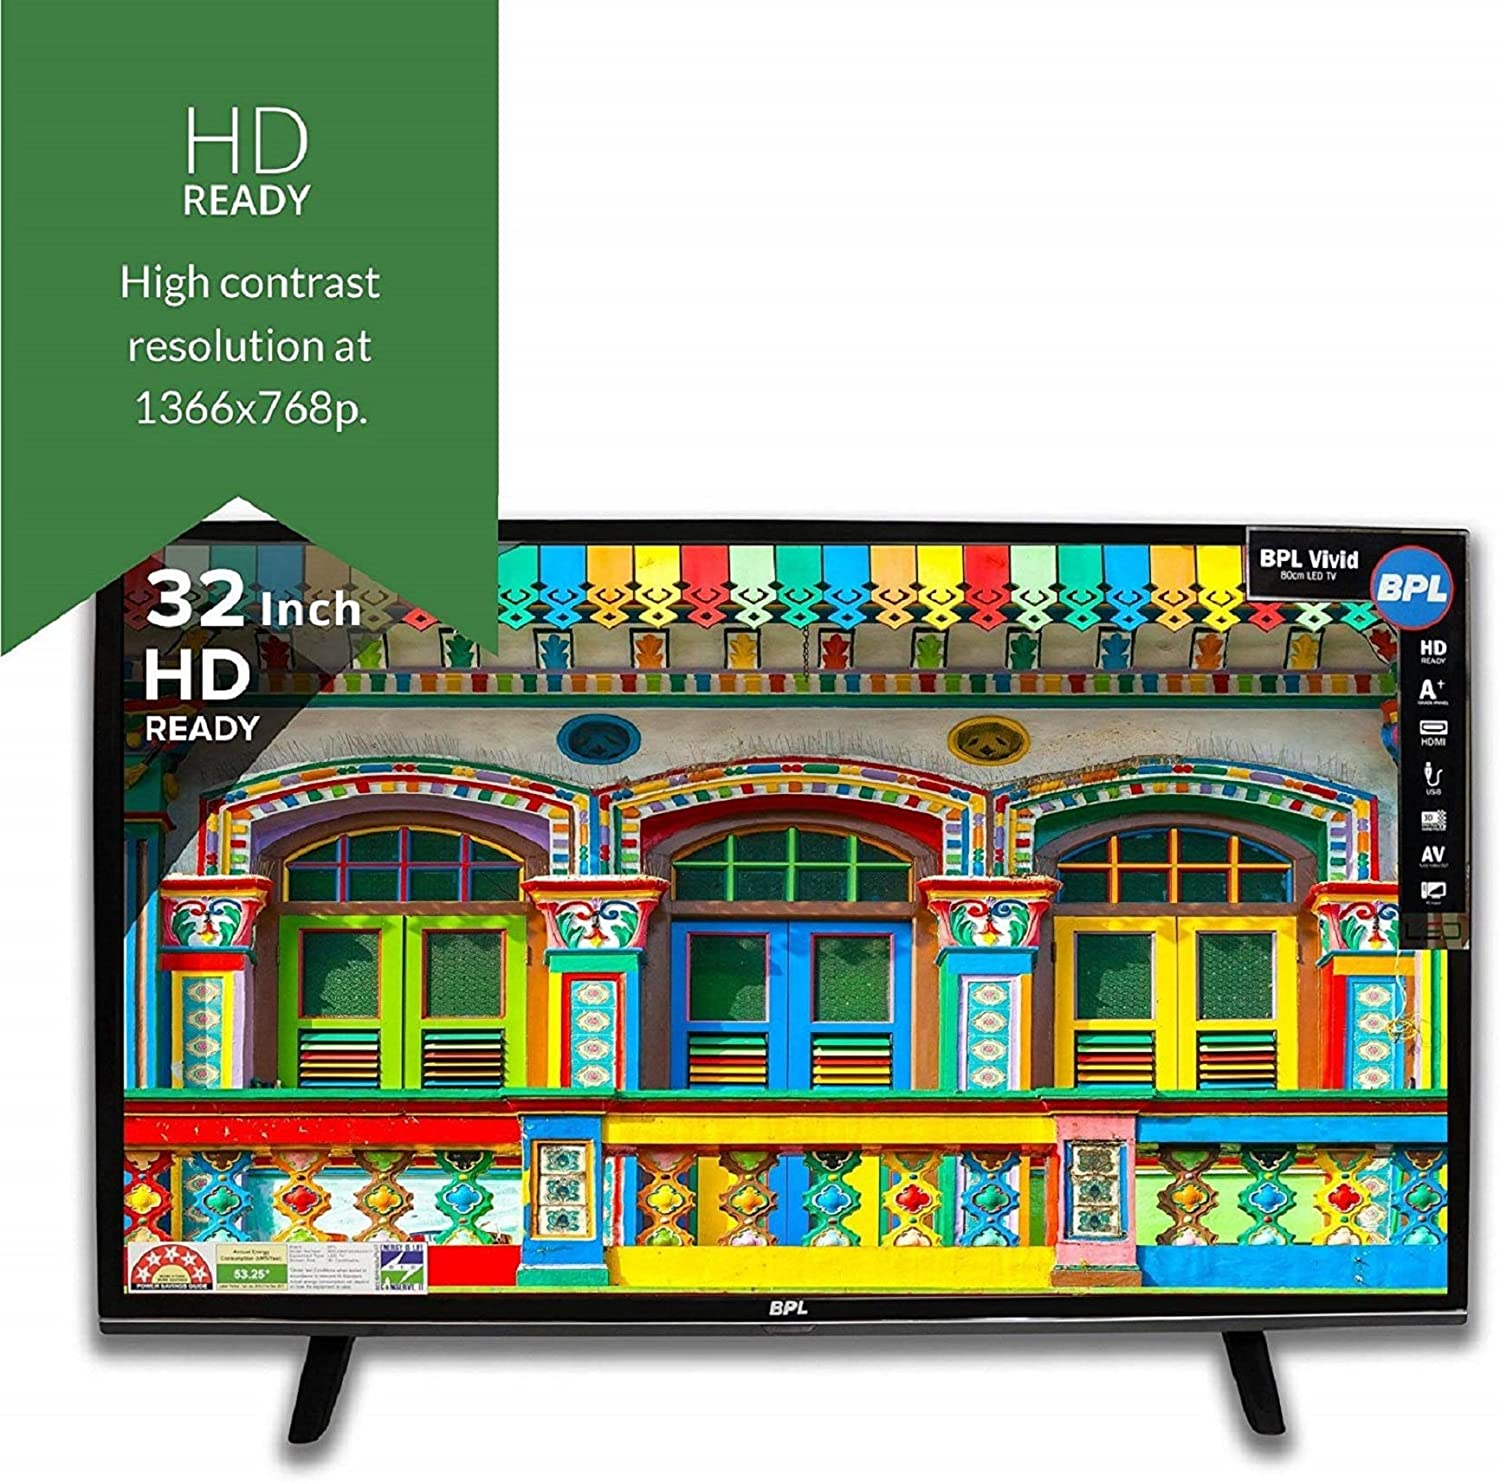 a2613b3a9 BPL 32 Inches HD Ready LED TV Price  Buy BPL 80cm Vivid HD Ready ...